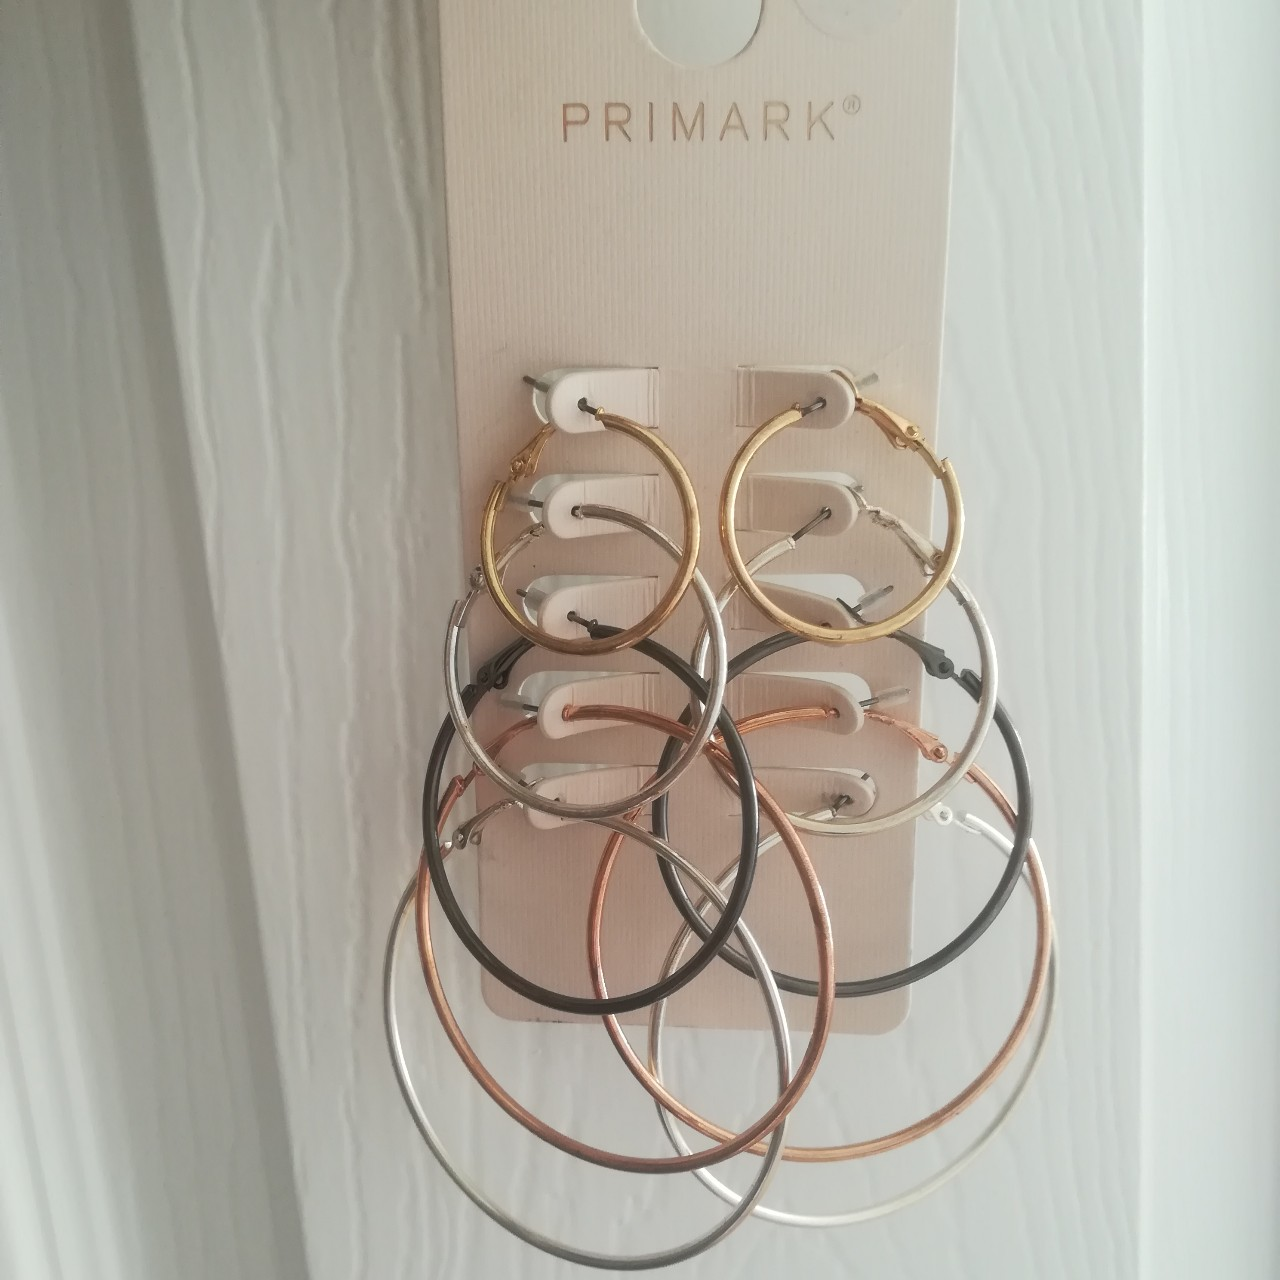 c103944198856 Primark 5 pack hoop earrings, brand new 2 silver... - Depop